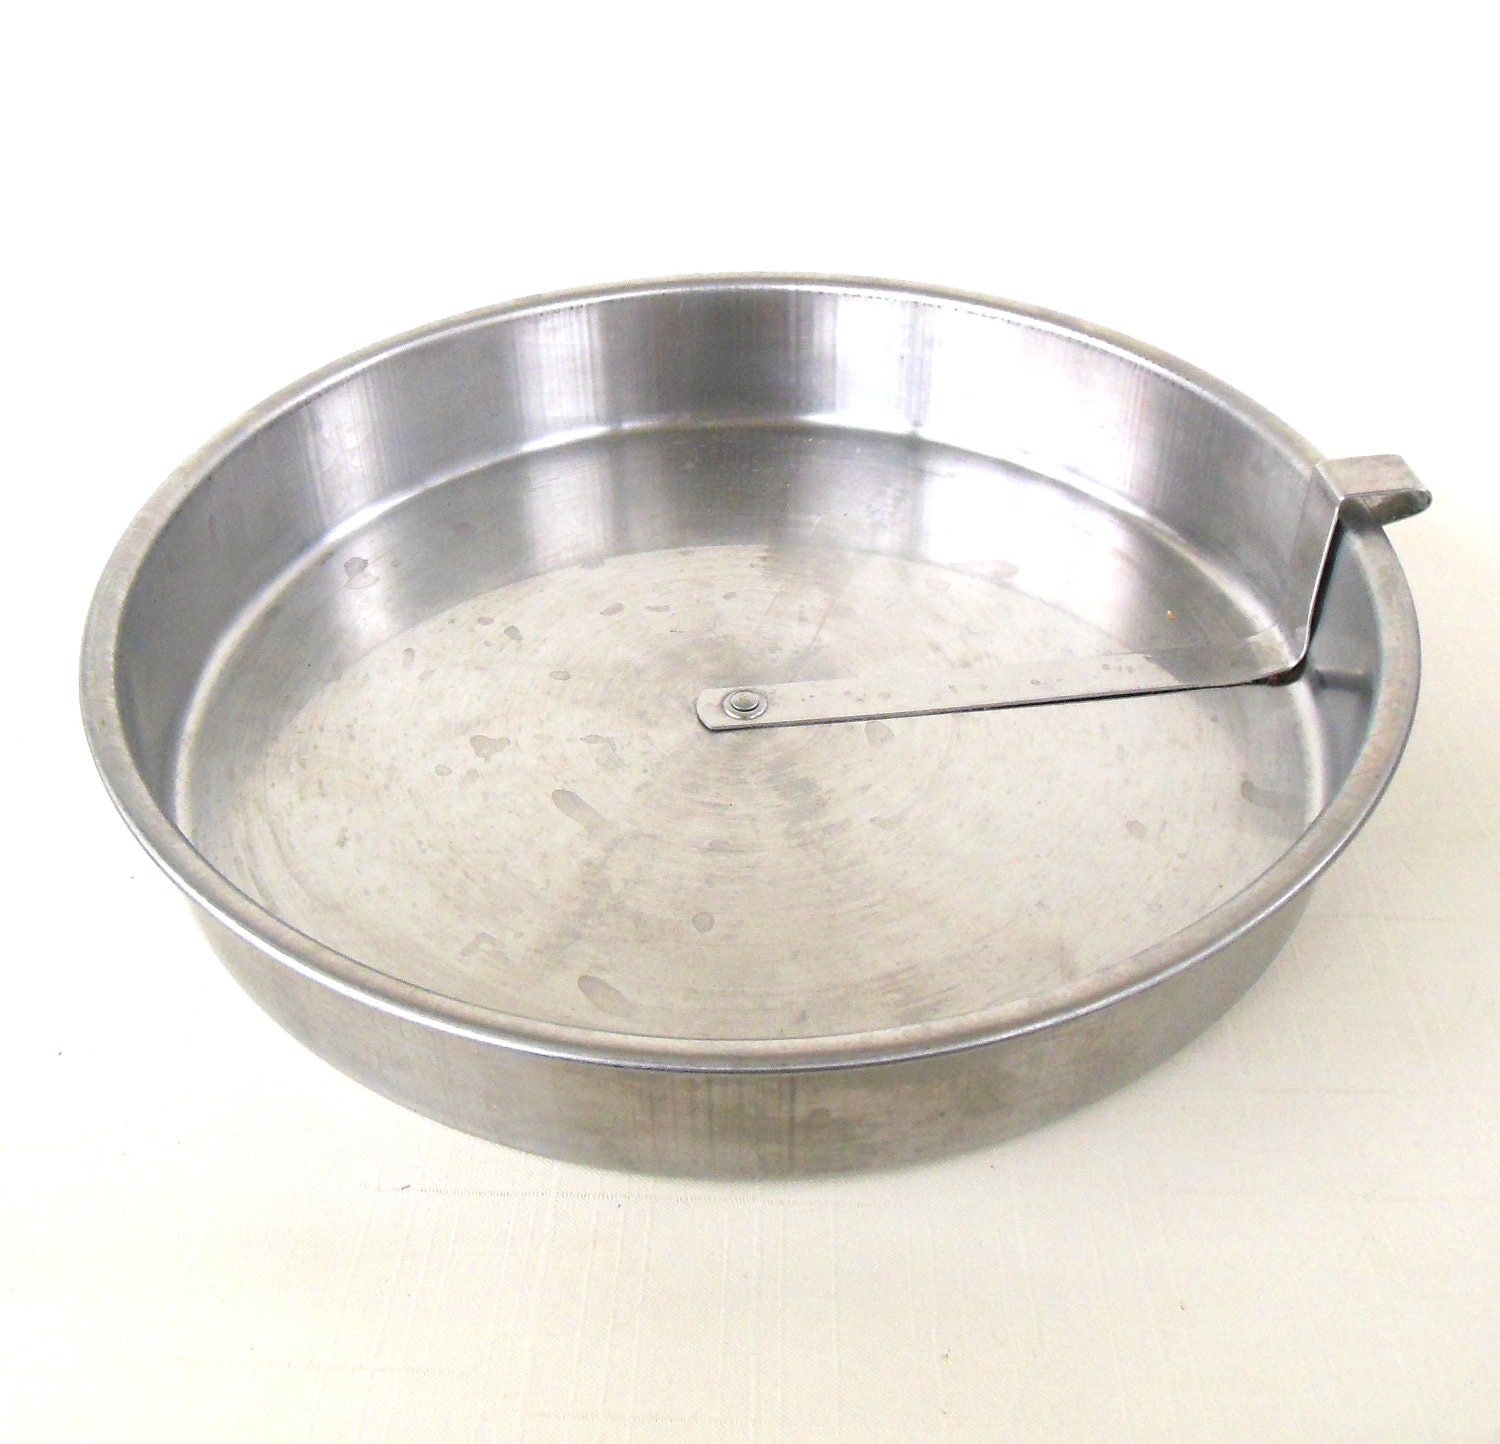 Stainless Slider Cake Pan 9 Round Bake Well Vintage